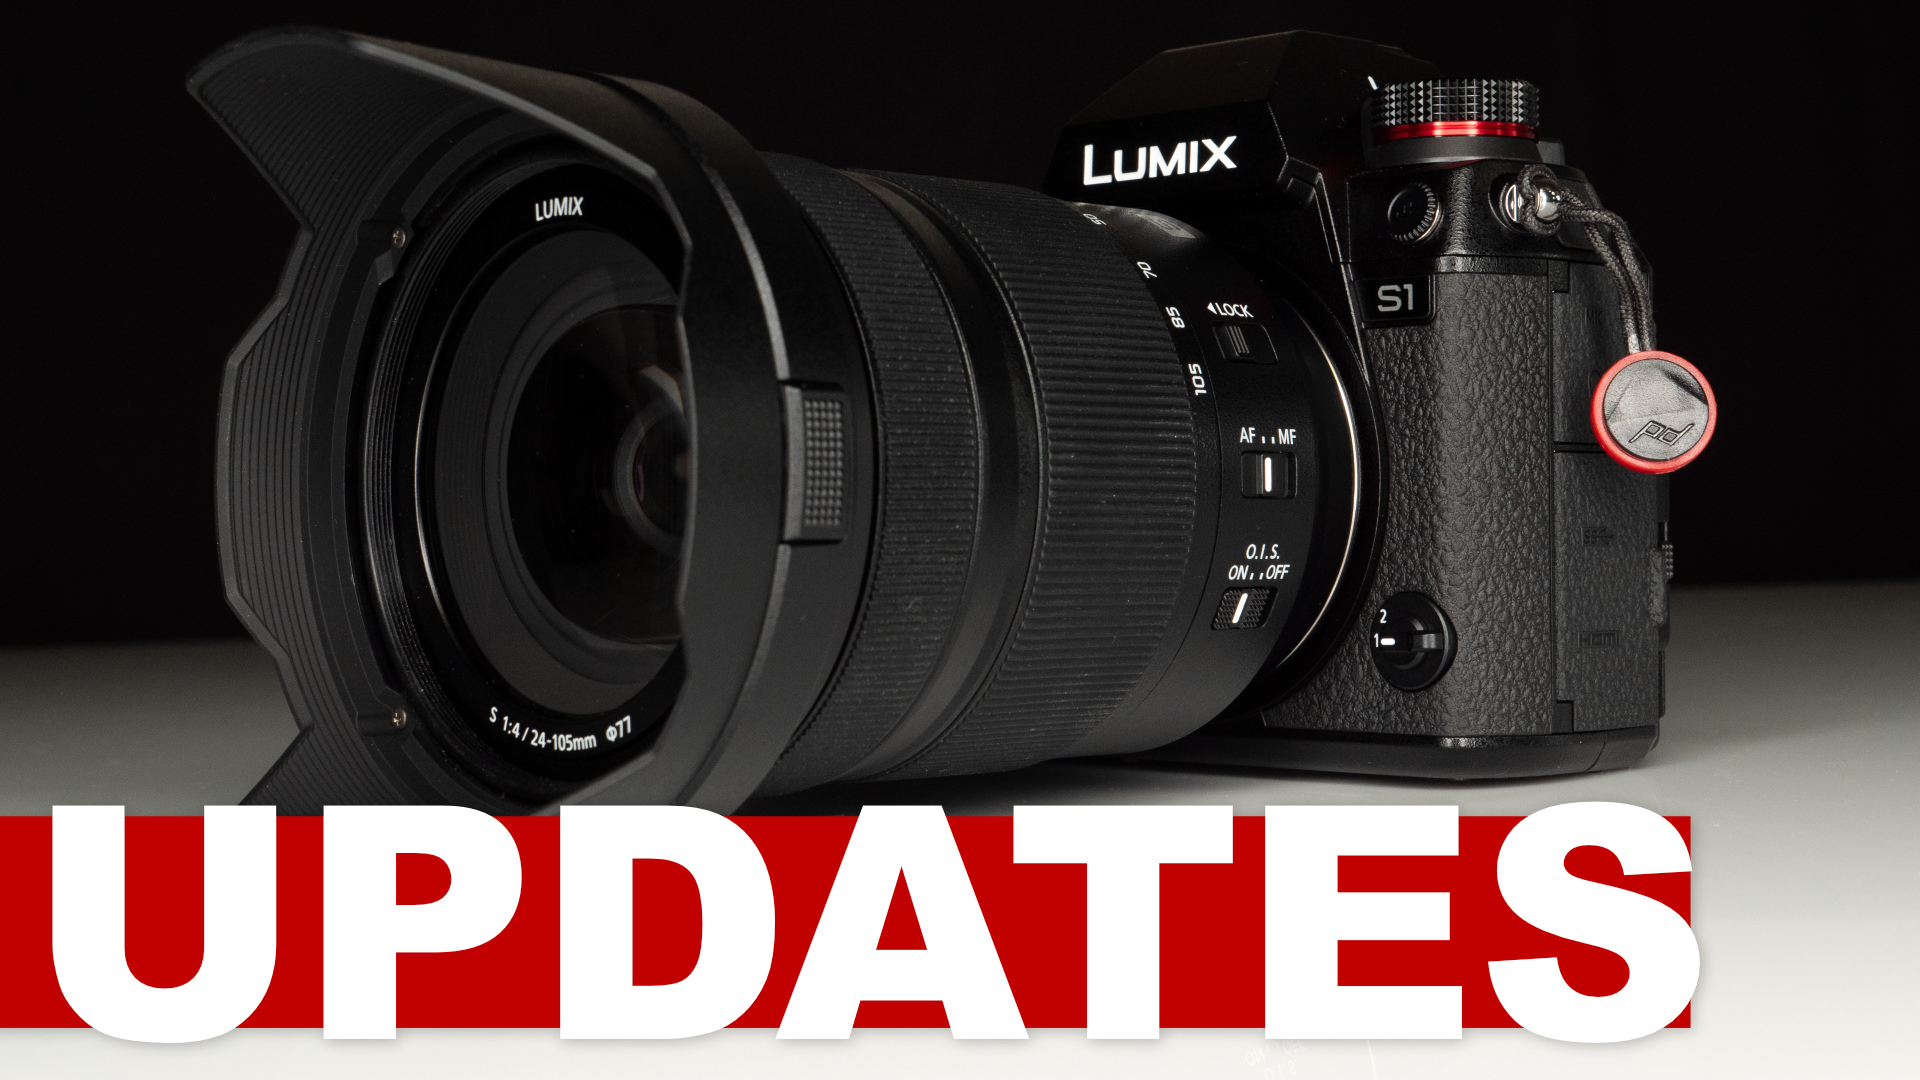 Updates for the Panasonic LUMIX S1 and S1R and 24-105mm f/4 and  70-200 f/4 lenses